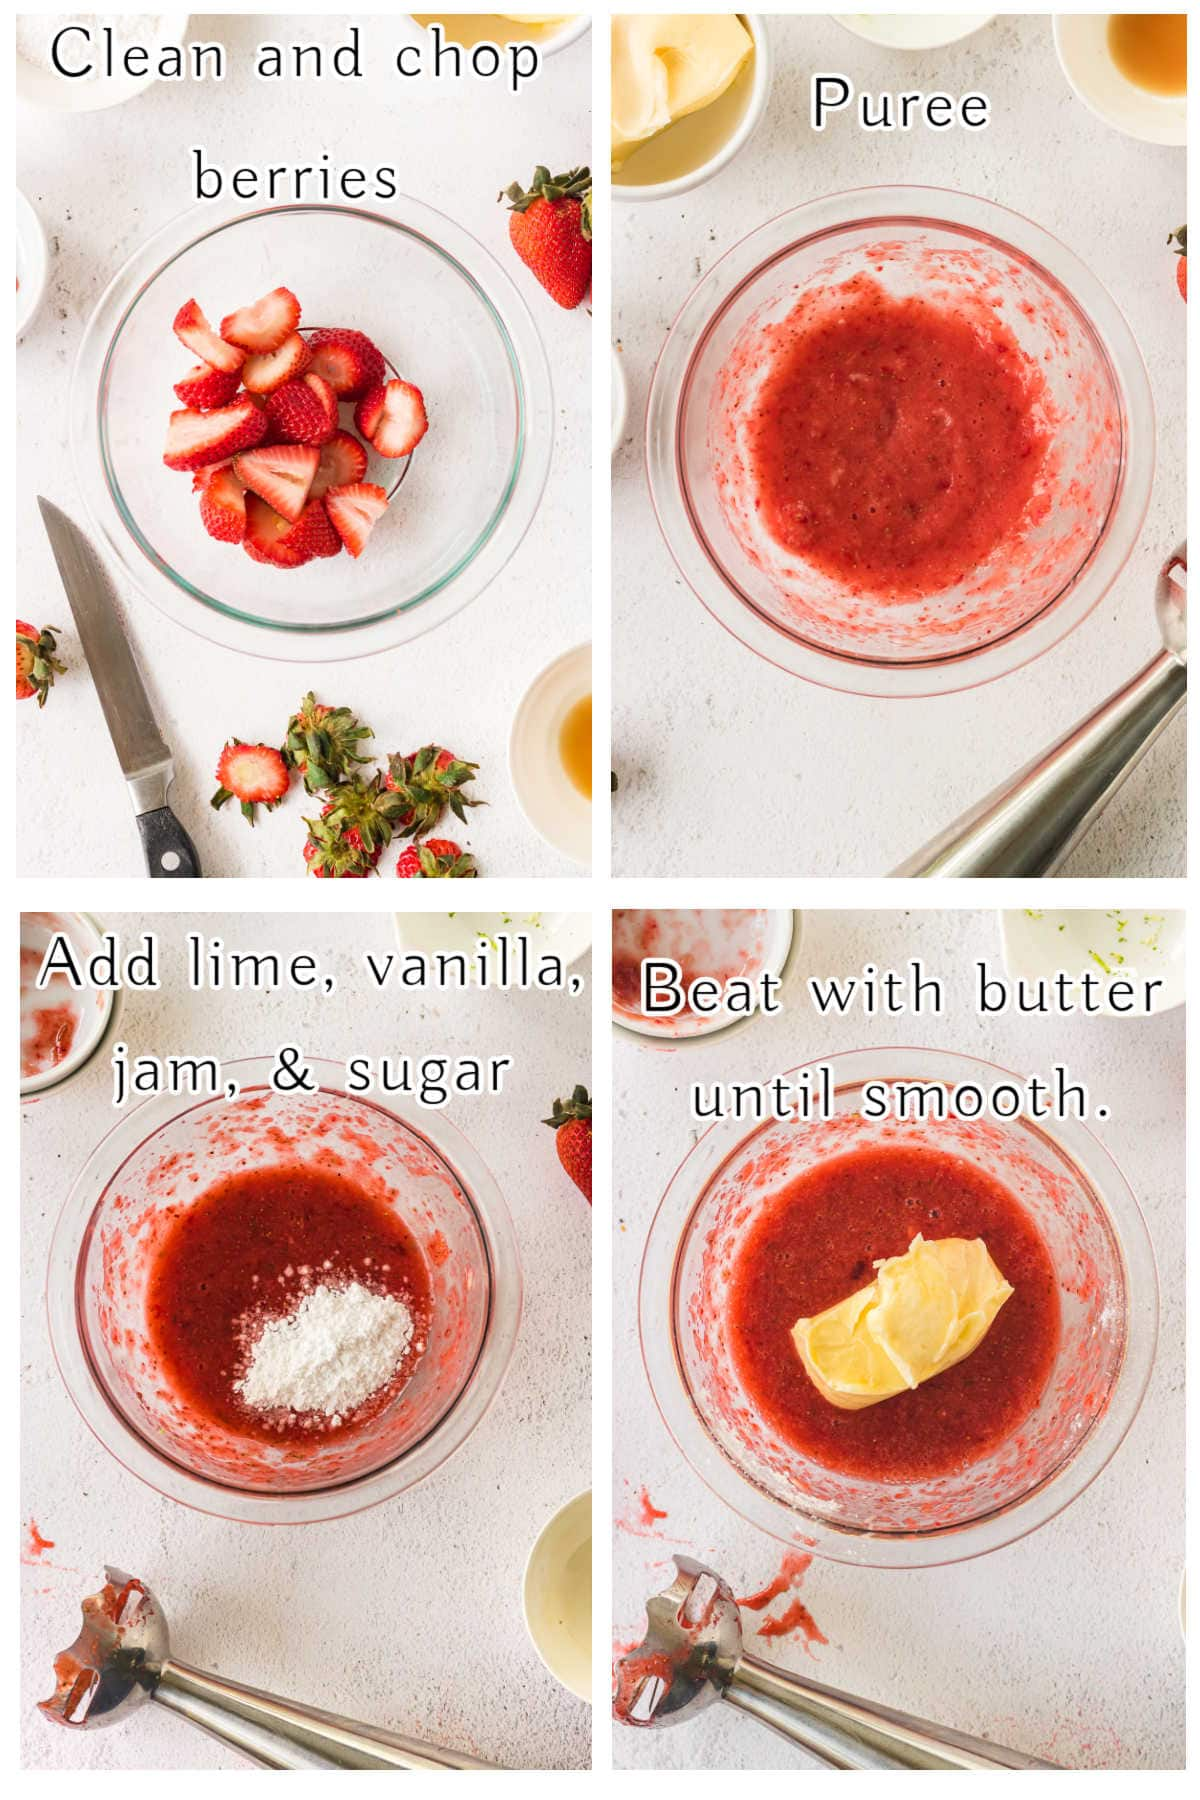 How to Make Strawberry Butter